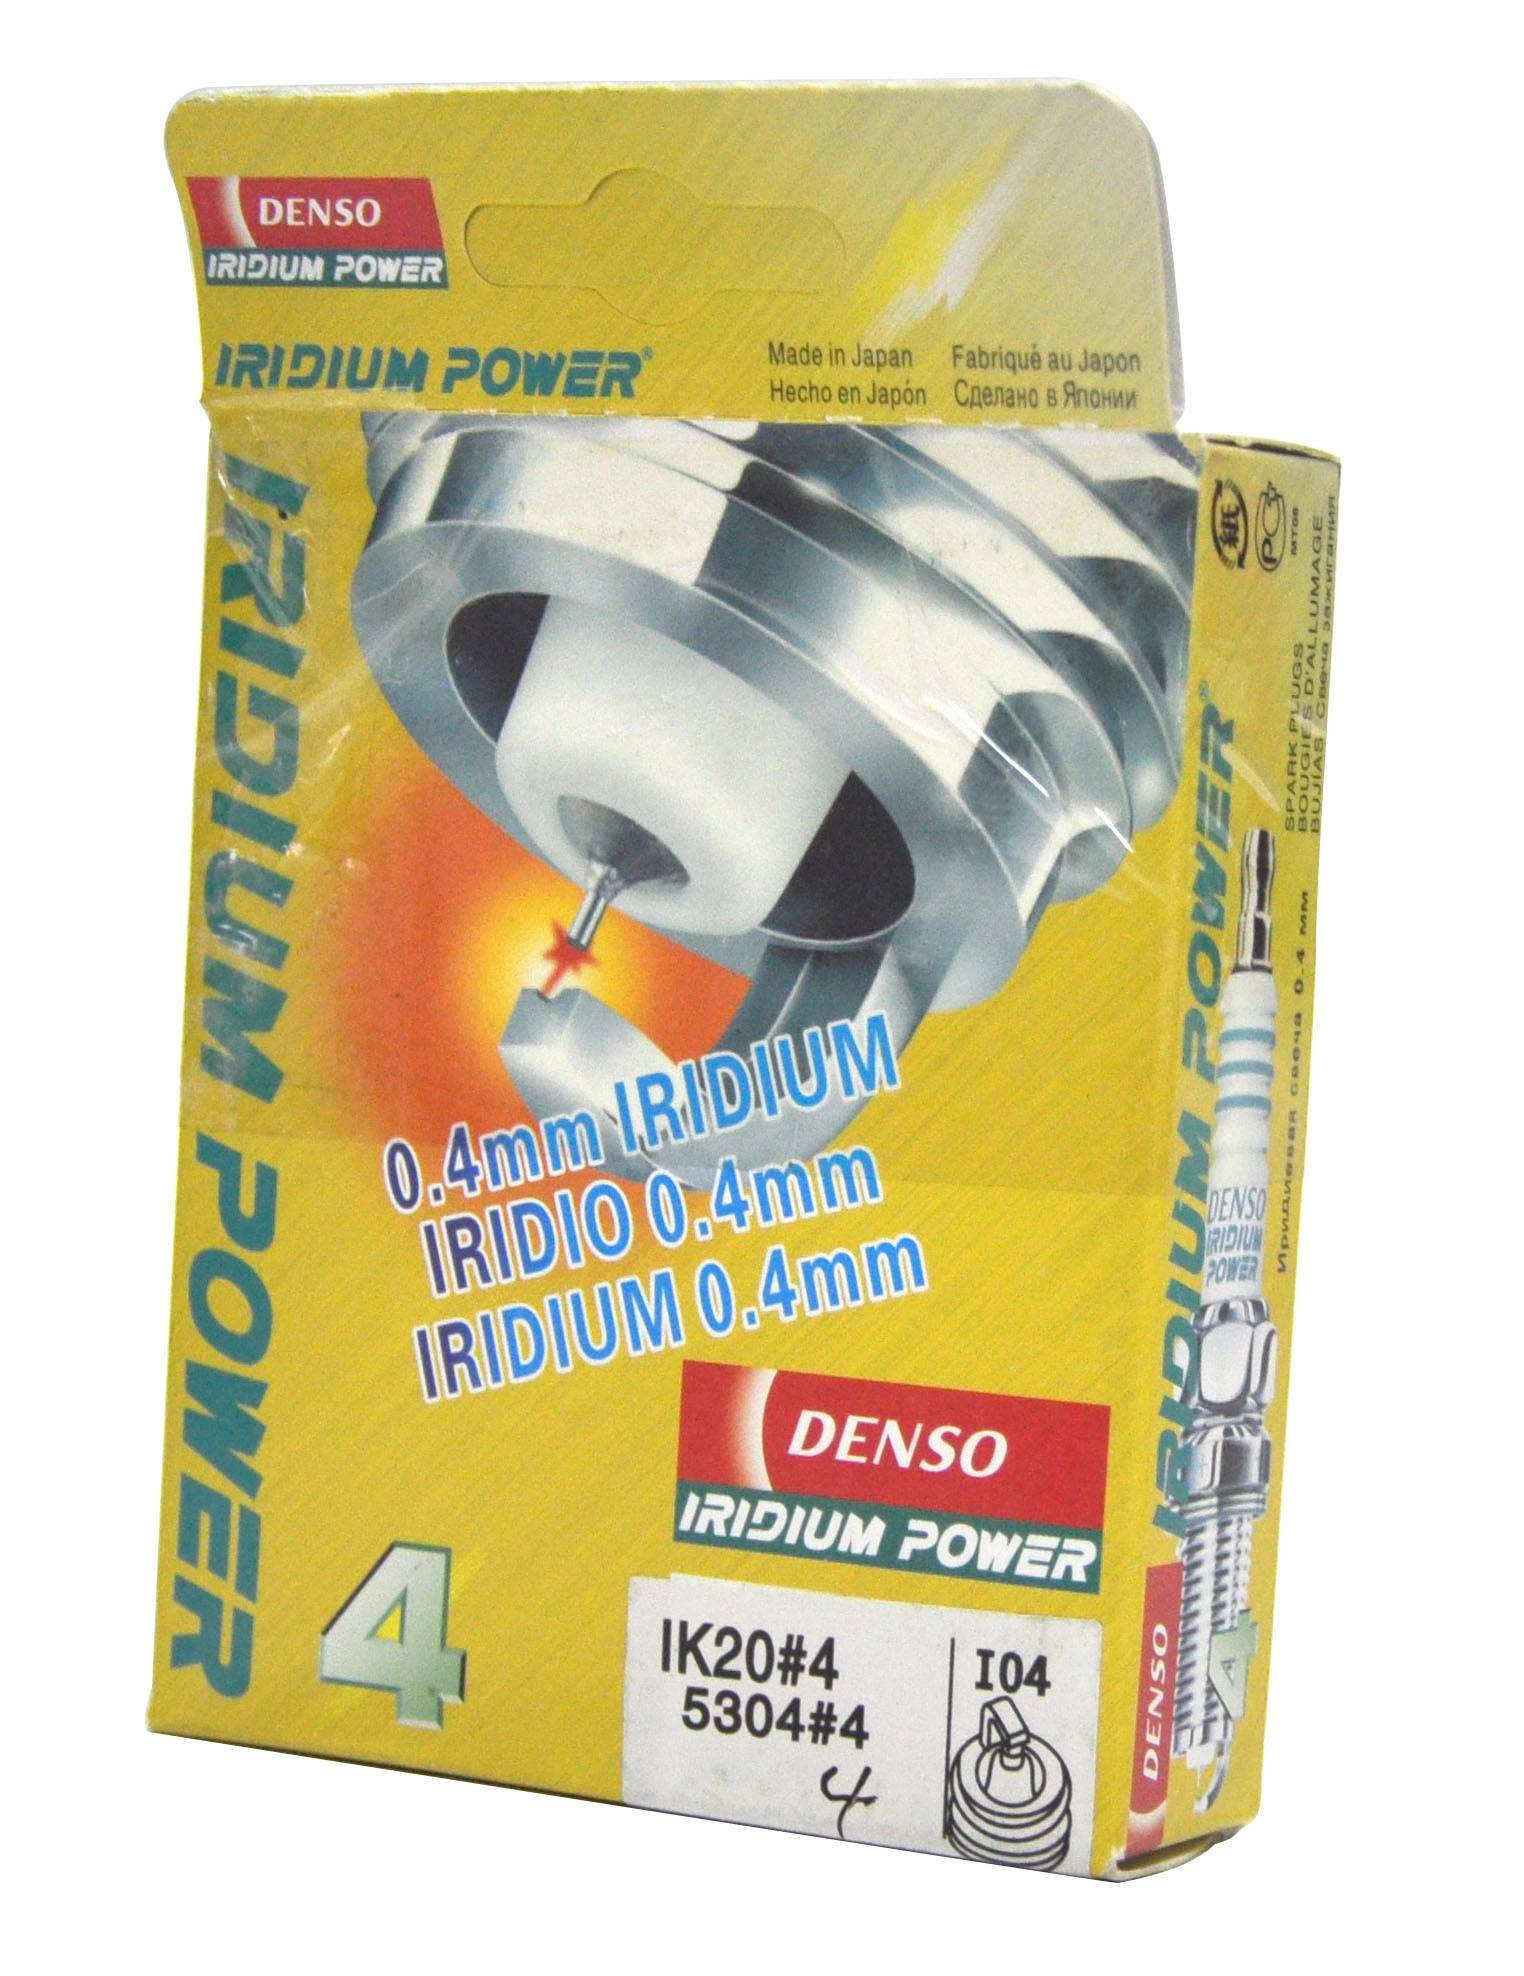 Renew Denso Spark Plugs IK20 For Audi A6 1.8 (4A) L 85KW AFY Engine